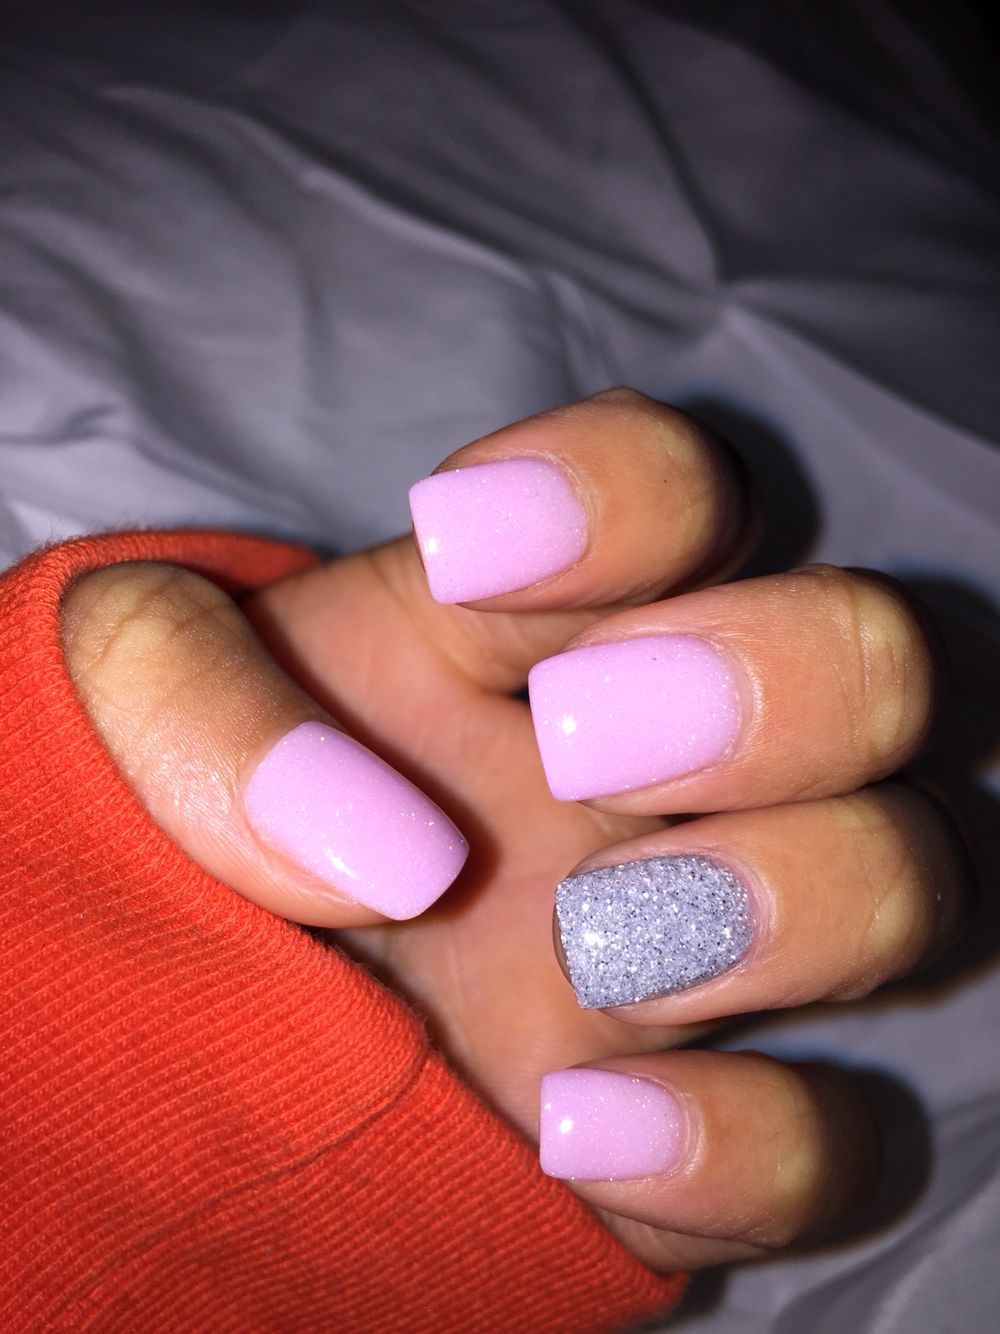 Nexgen Nails French Manicure: Nexgen *Shimmer Pink & Silver Glitter This Might Be How I